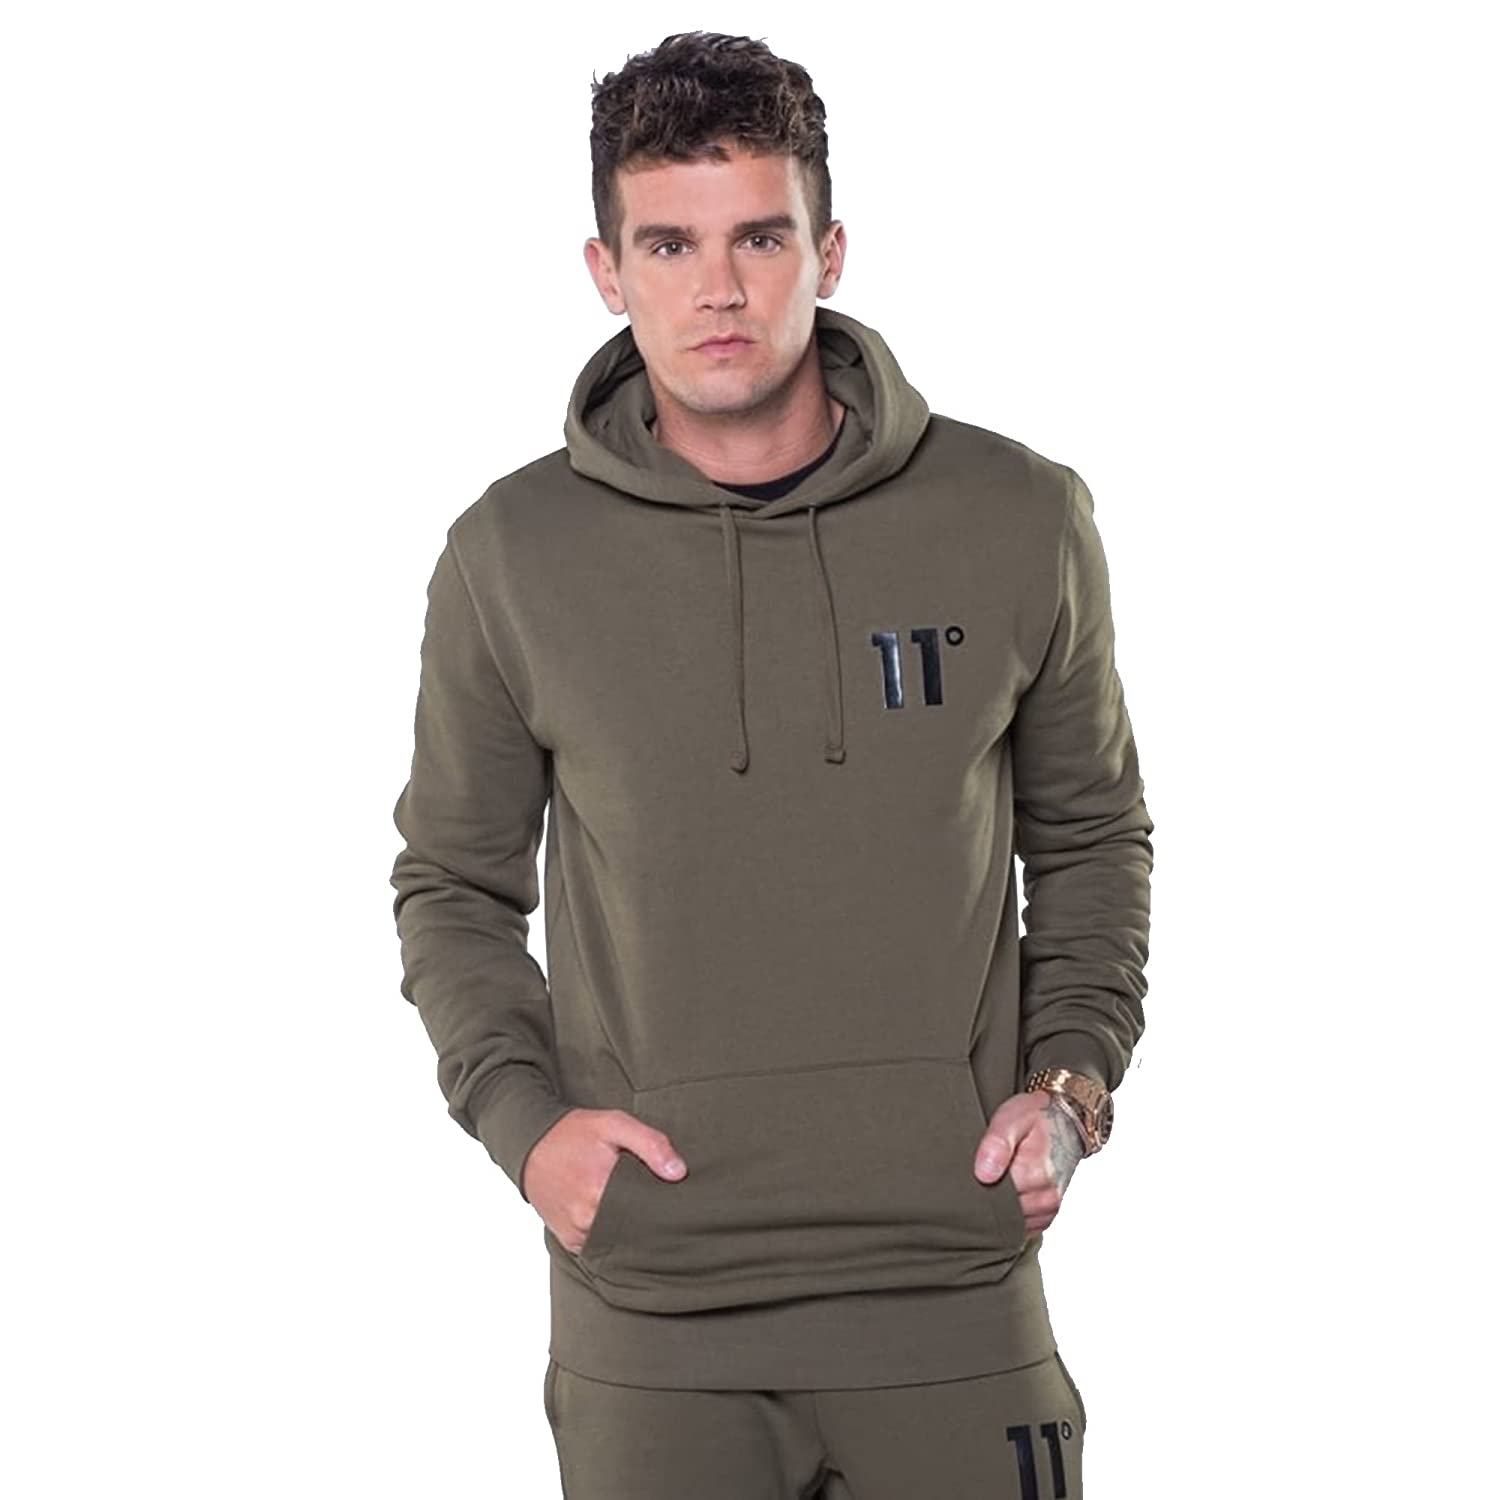 Eleven Degrees 11 Degrees 11D-378 Core Pull Overhead Hoodie - Khaki Large Khaki